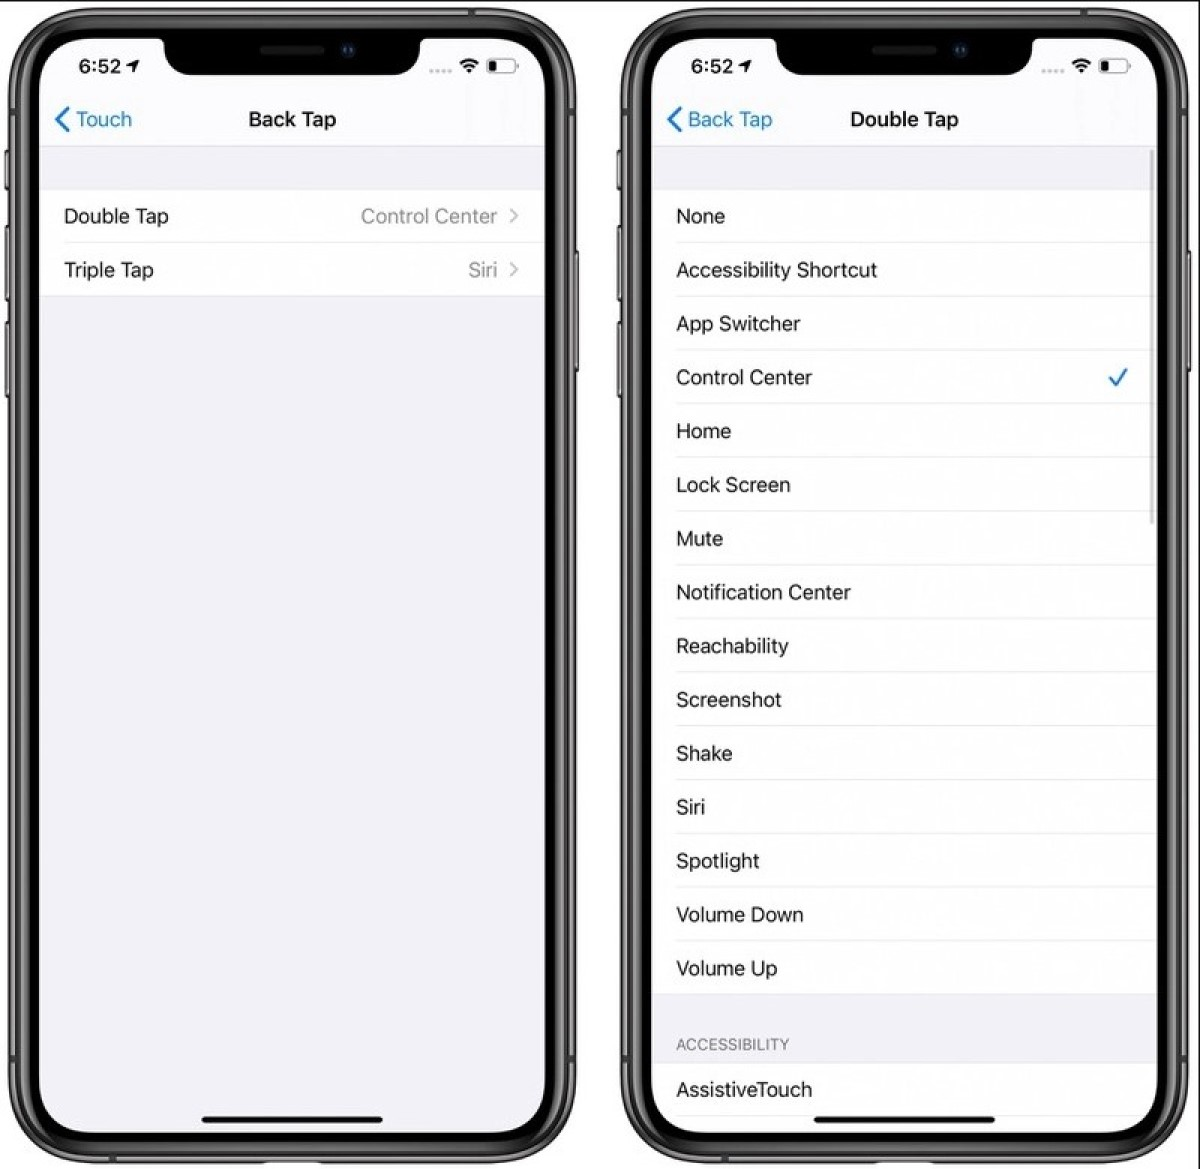 new-back-tap-feature-ios-14